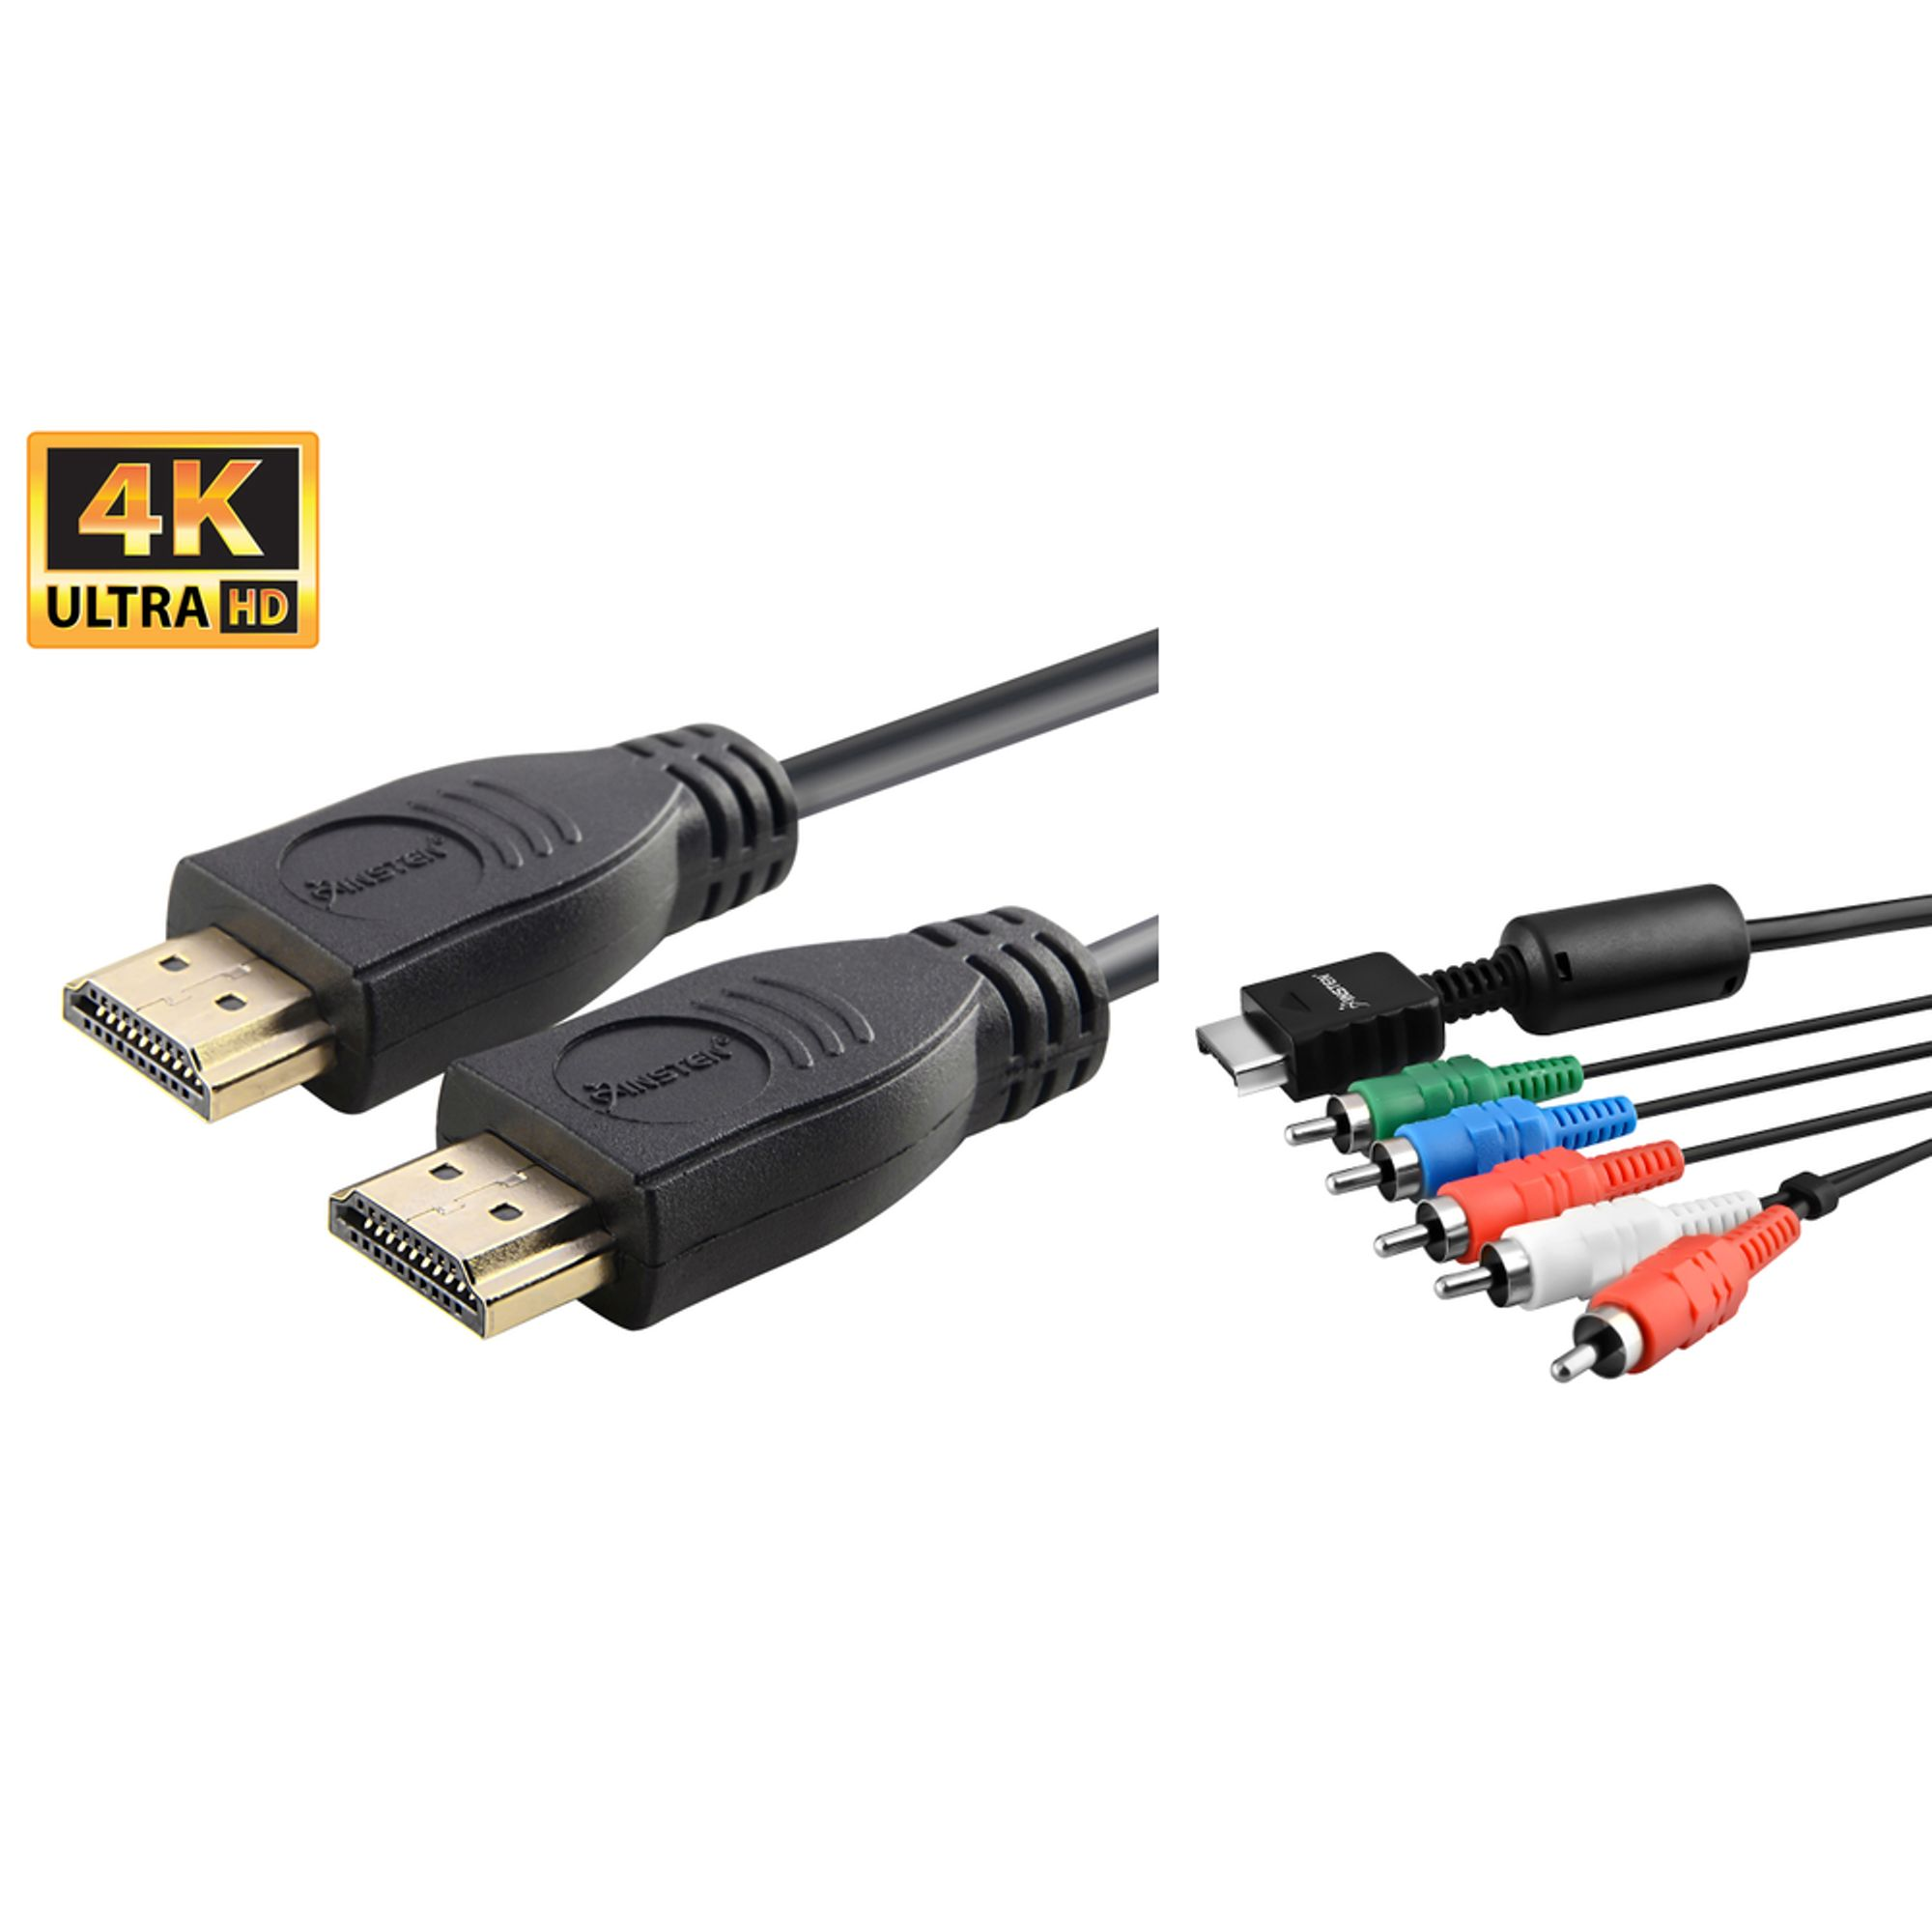 Insten Premium High Resolution Component AV Cable + 6 Feet Gold Plated high speed HDMI Cable for Playstation 4 PS4